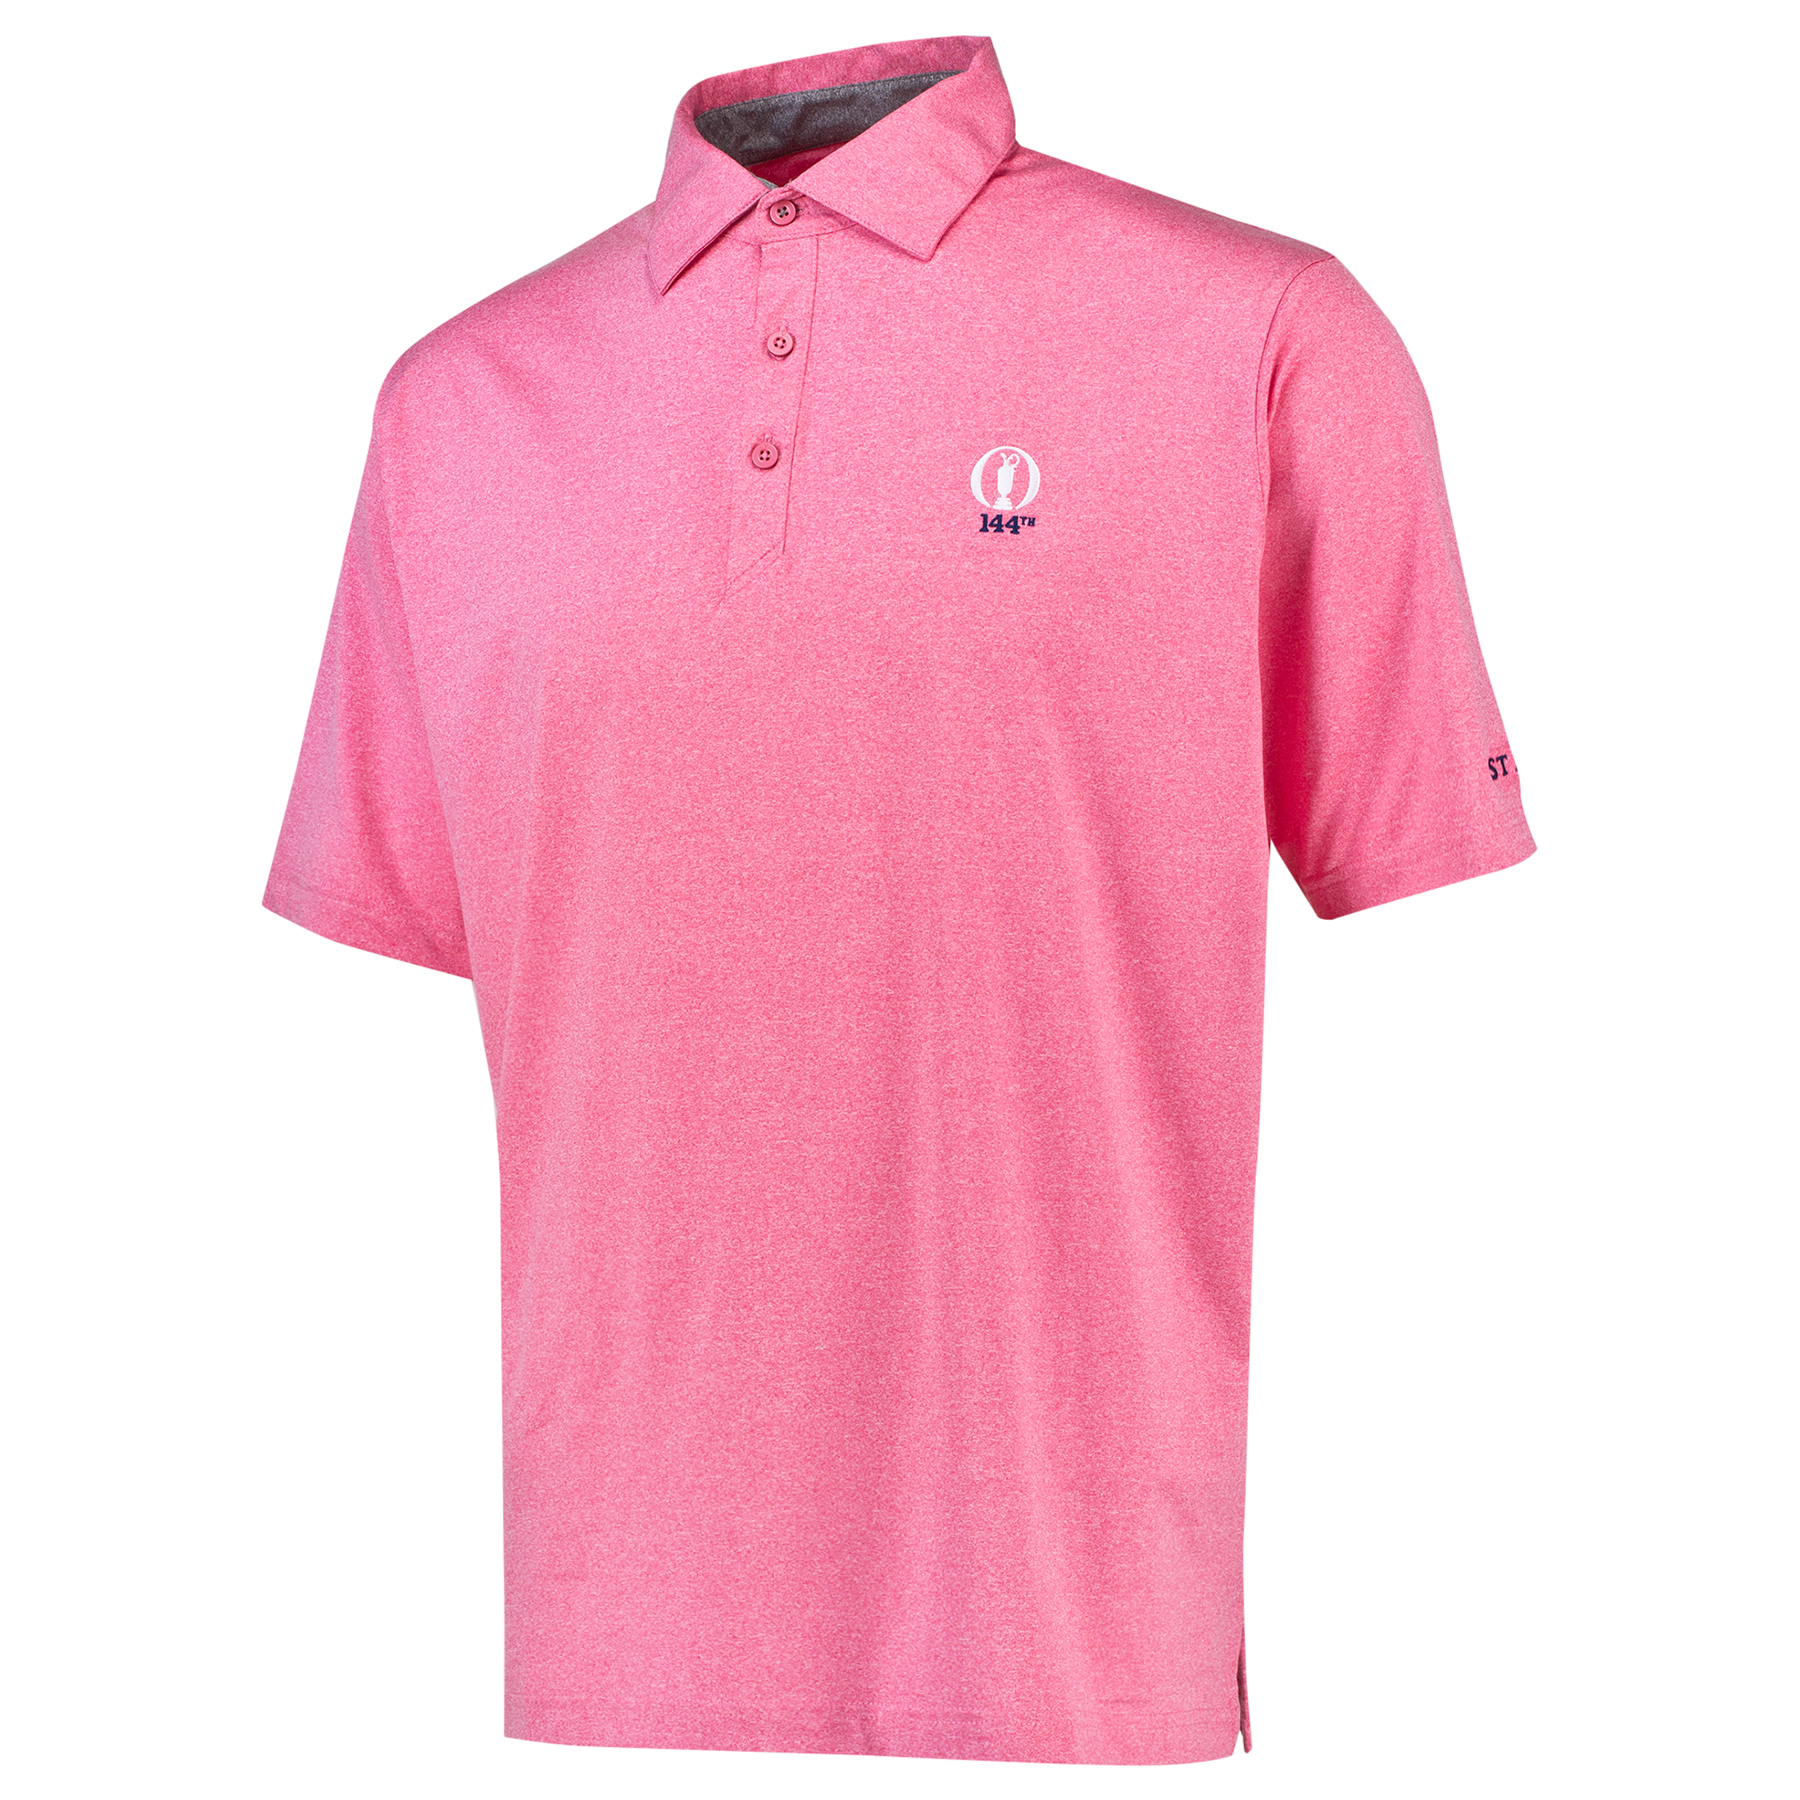 The Open 144th St Andrews Thermal Regulation Solid Polo - Pomegranate